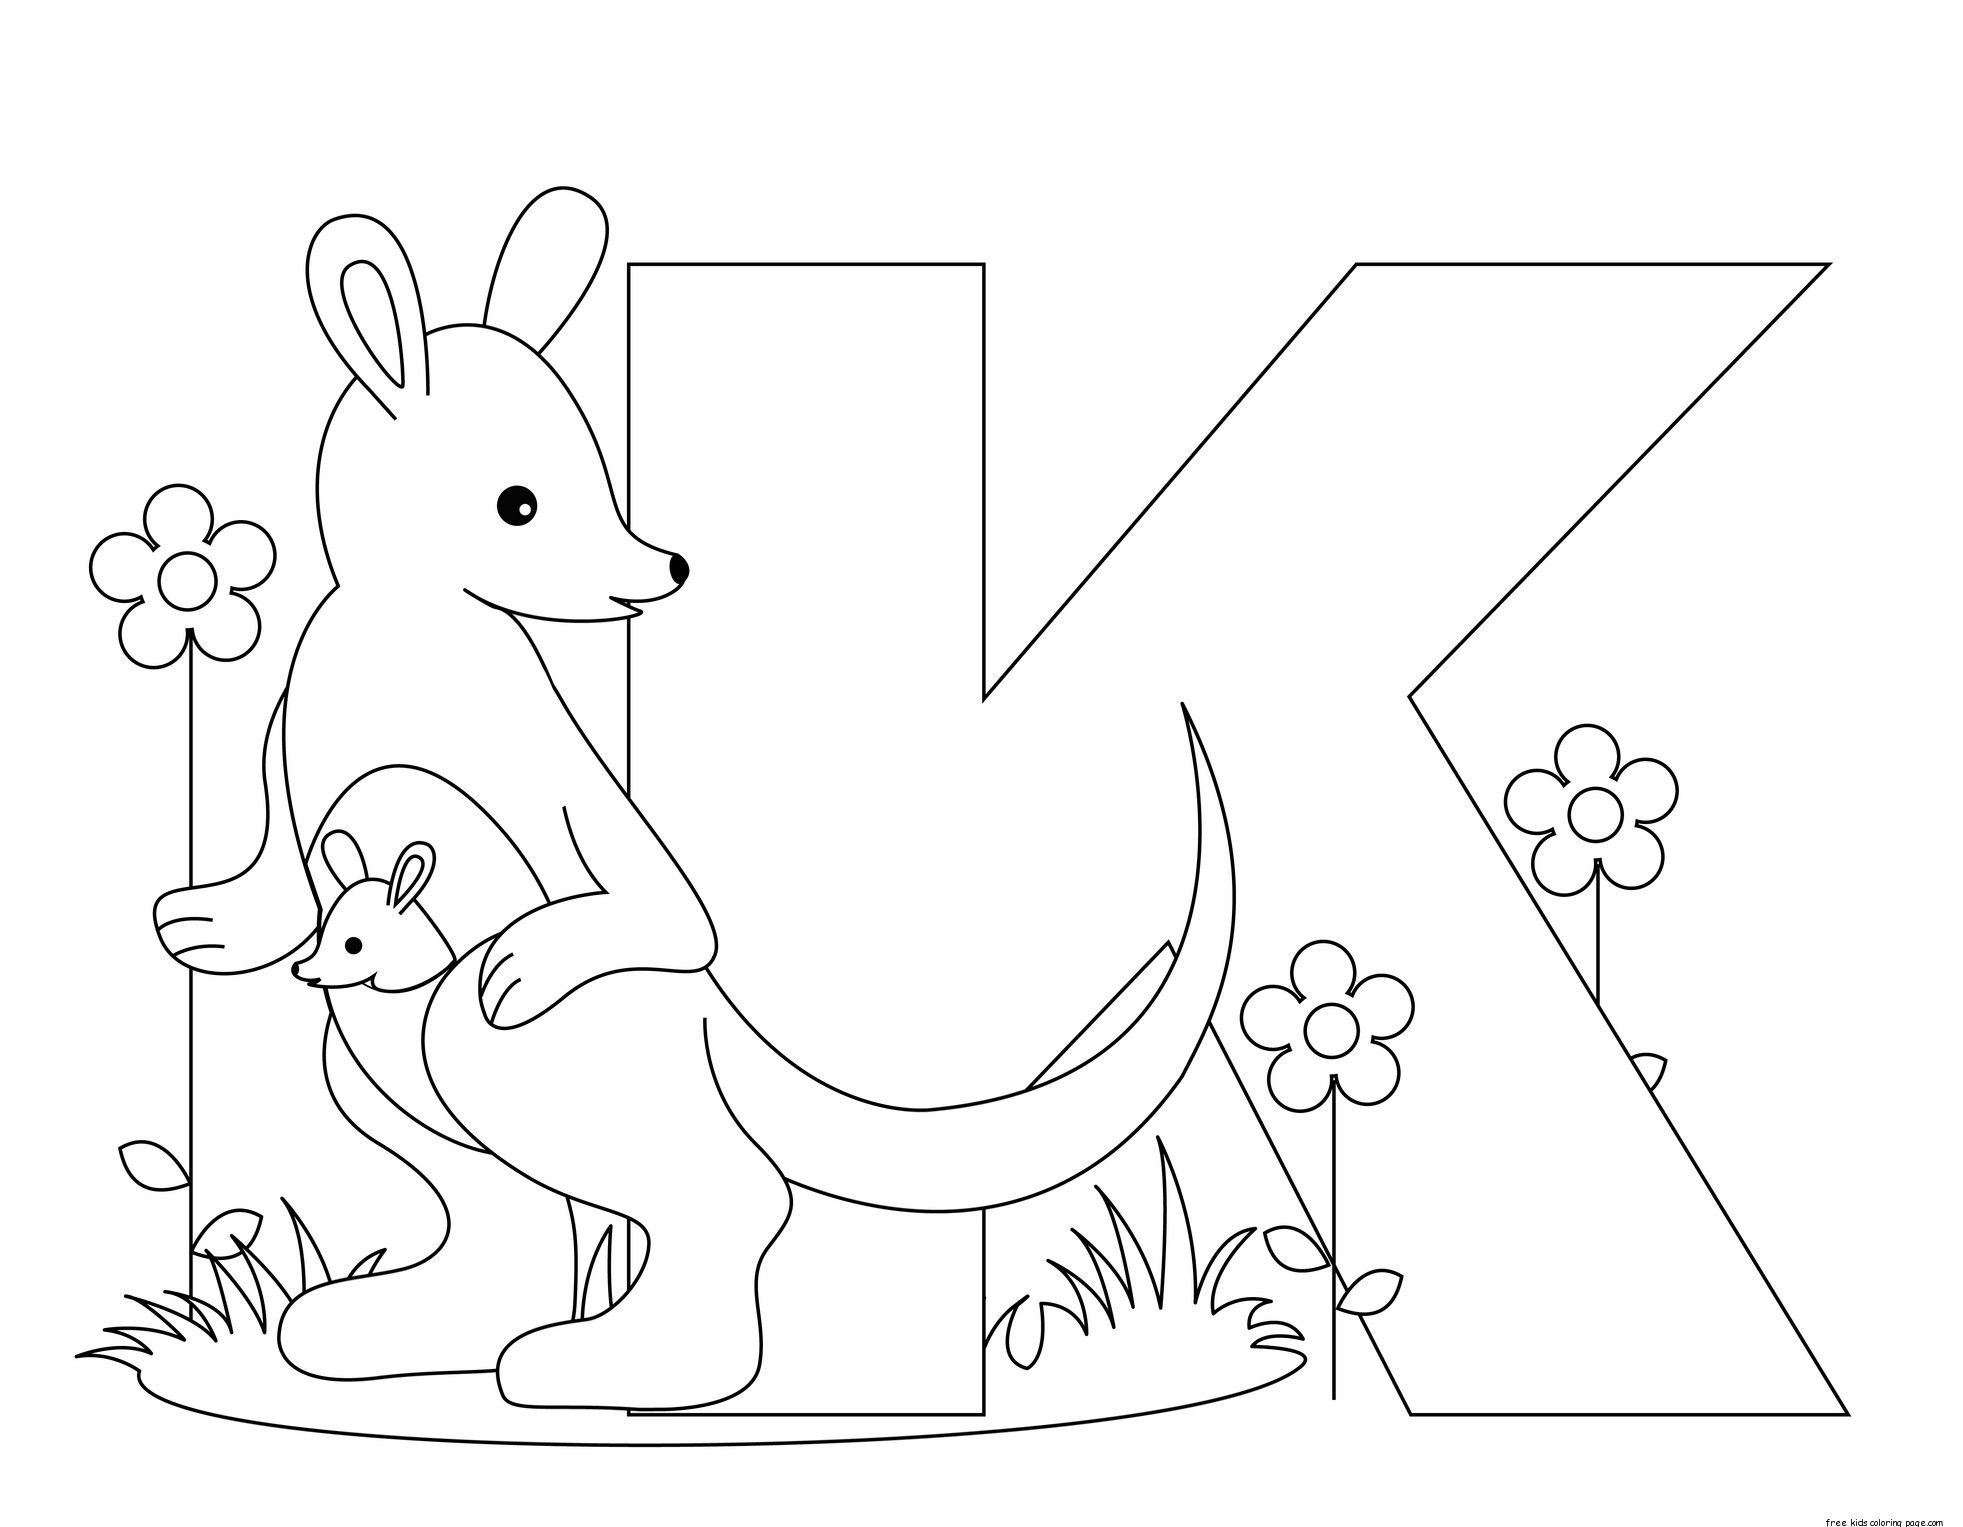 Printable-Animal-Alphabet-Letter-K-for-Kangaroo.jpeg (1963×1527 ...